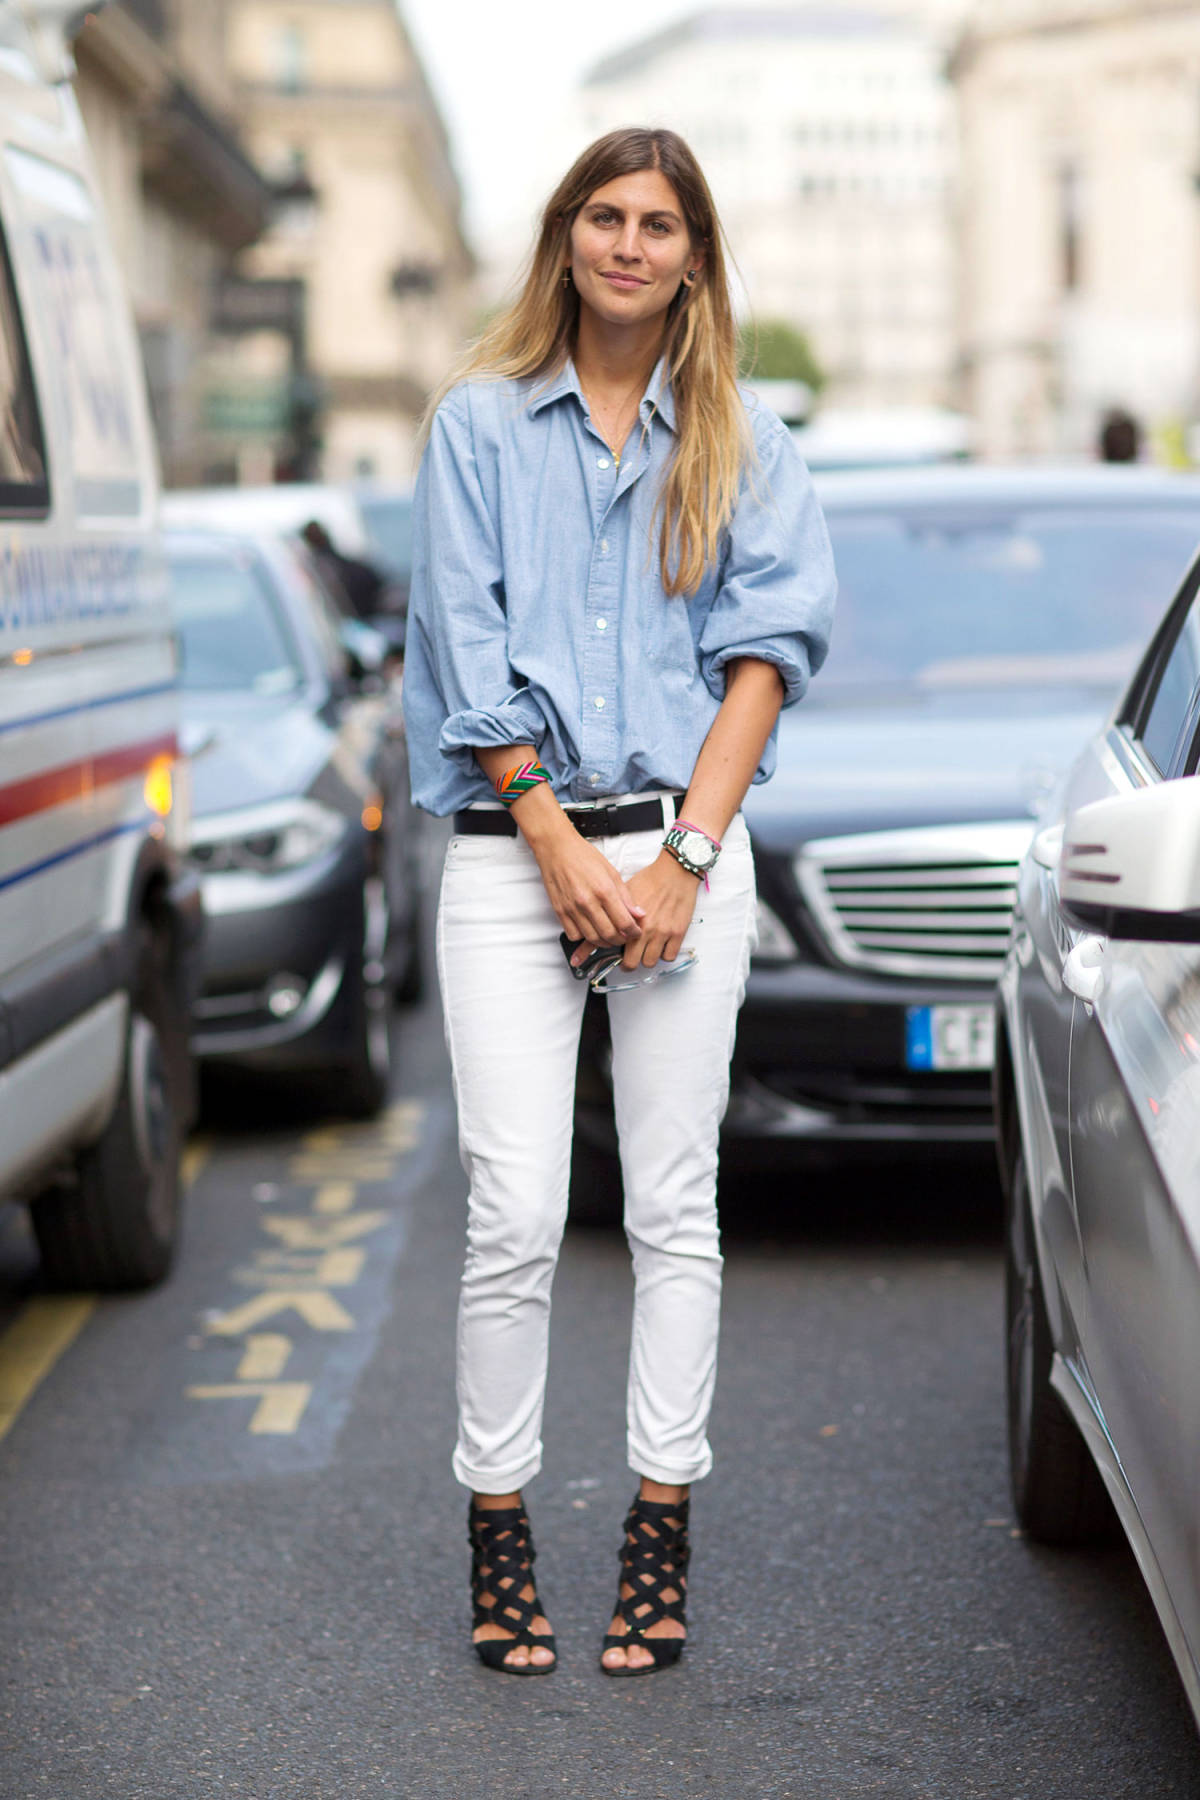 Best White Jeans For Women - Jeans Am